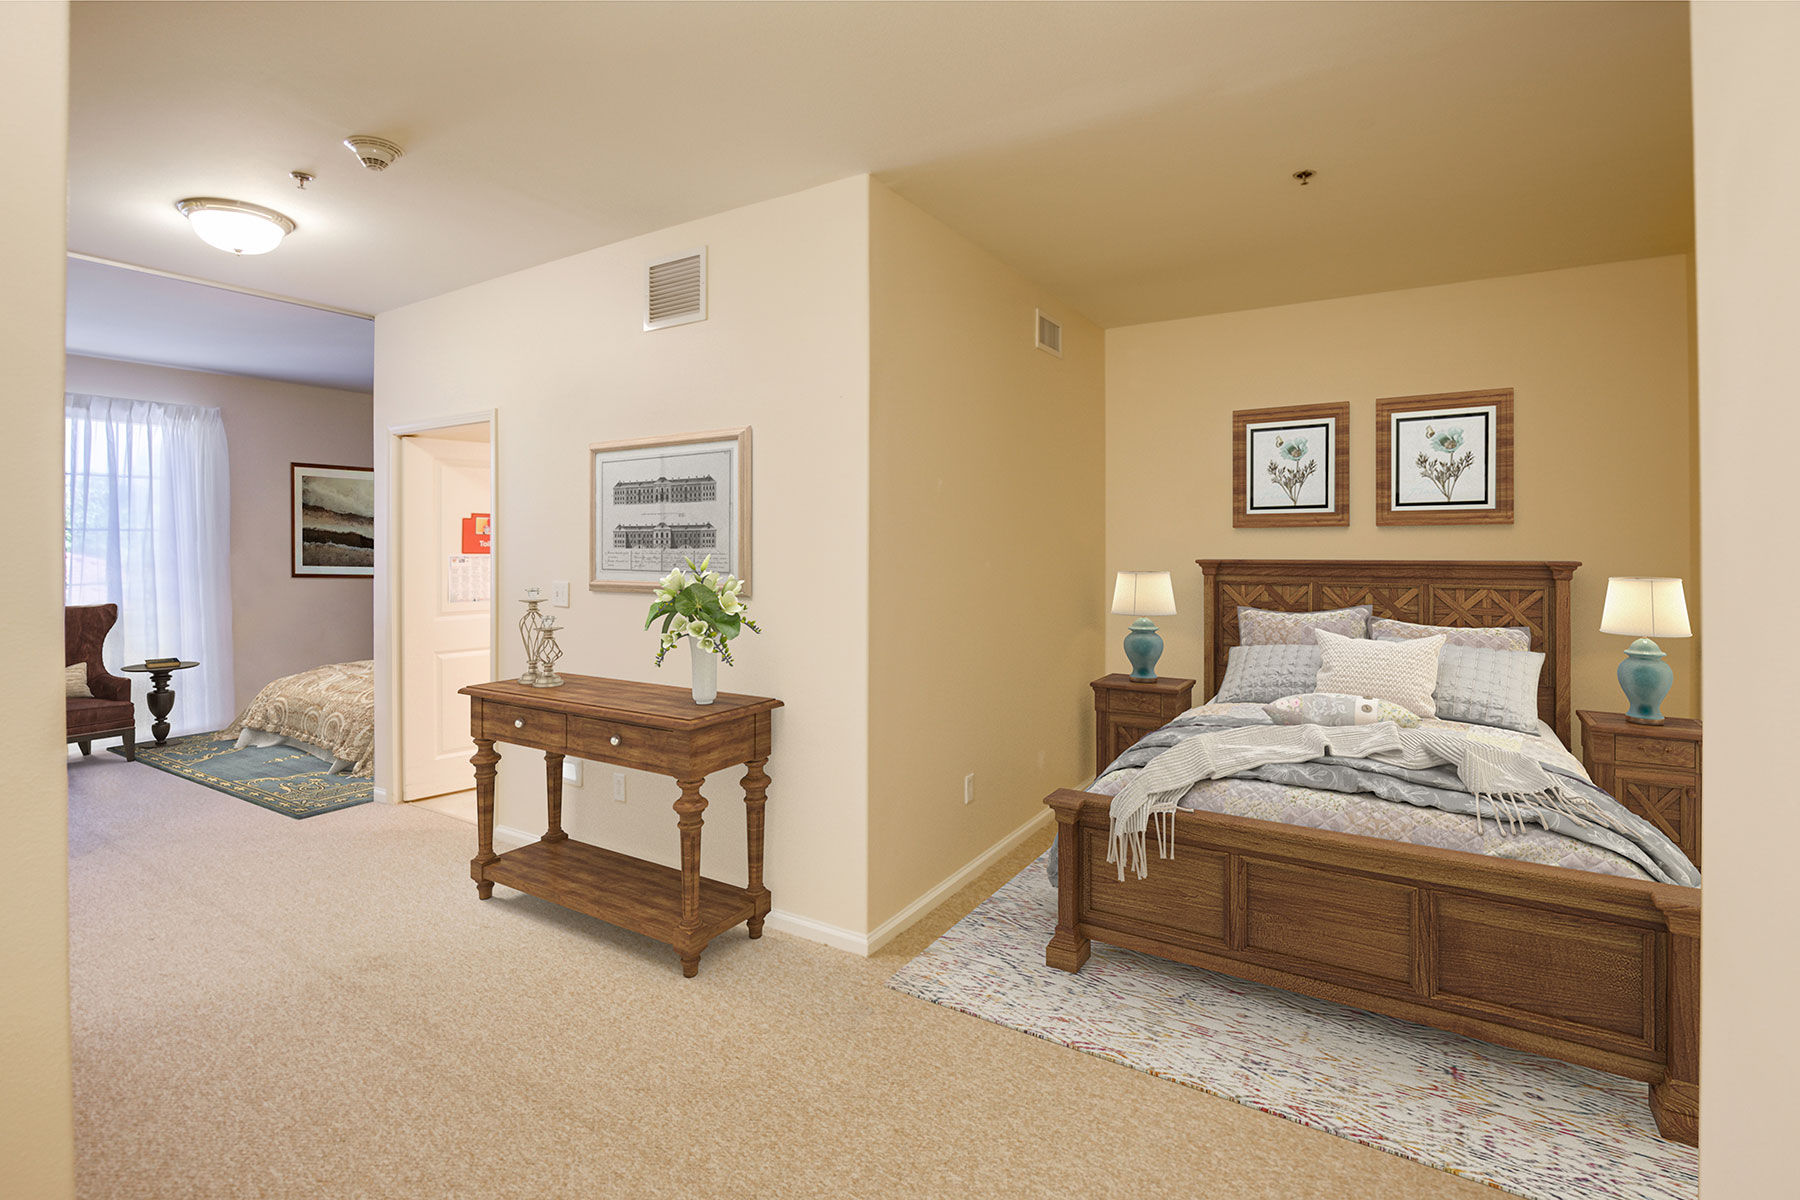 Memory Care double occupancy bedroom